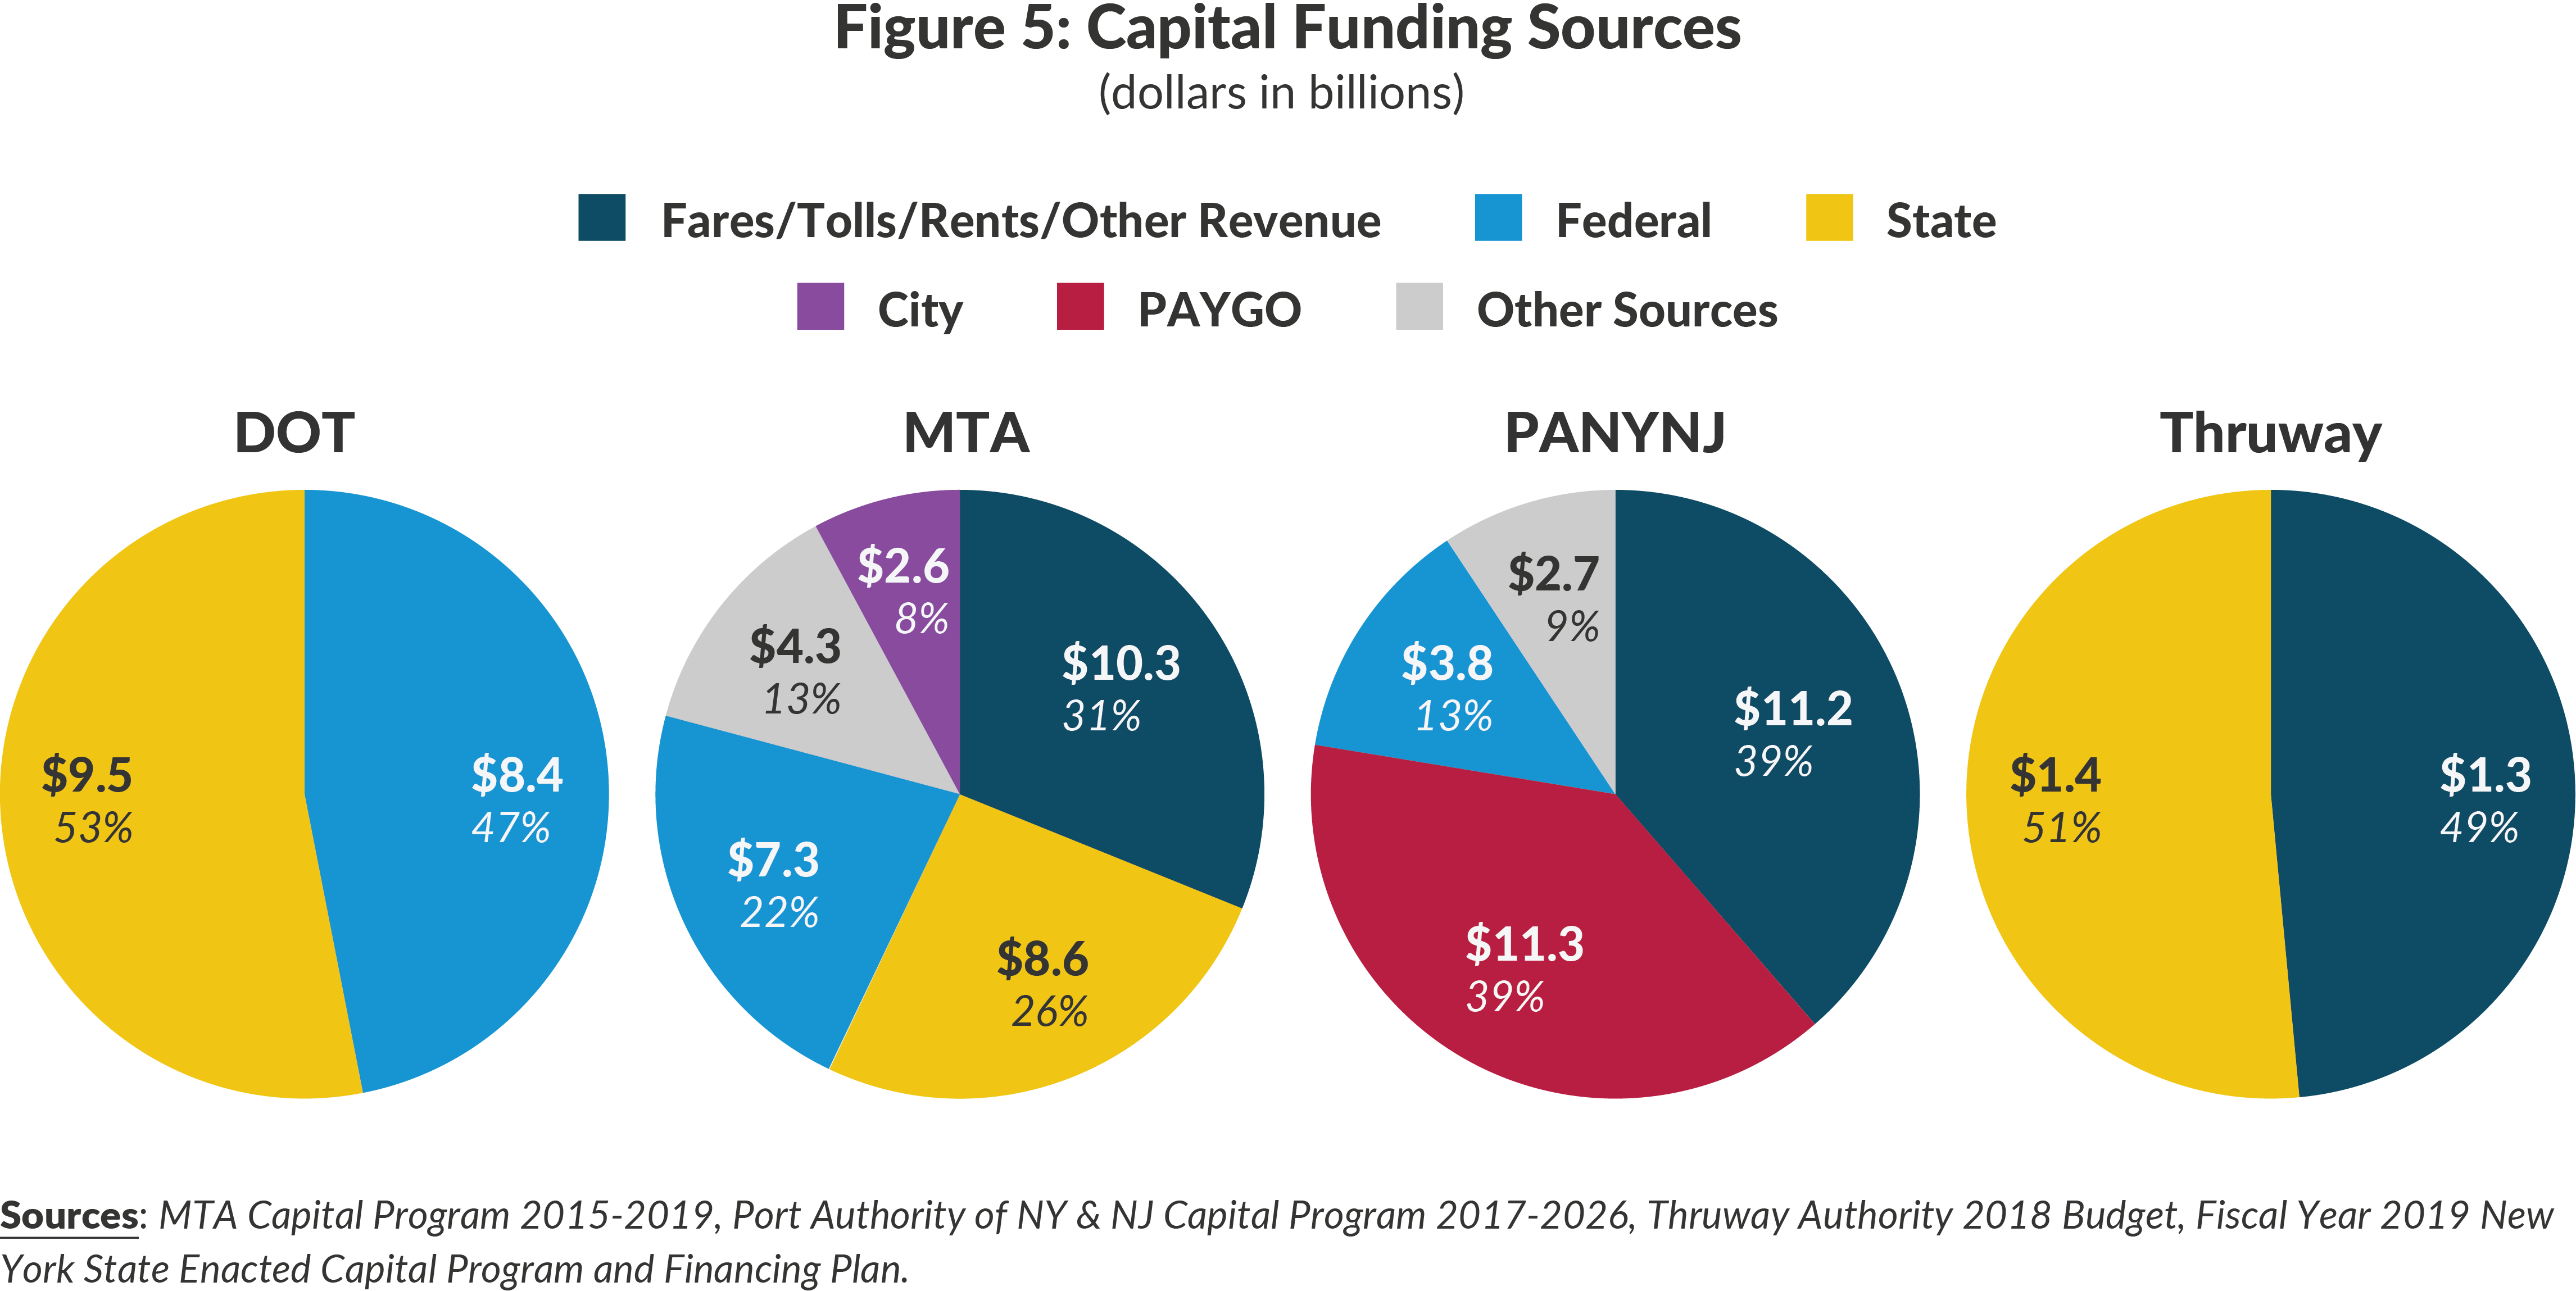 Figure 5: Capital Funding Sources